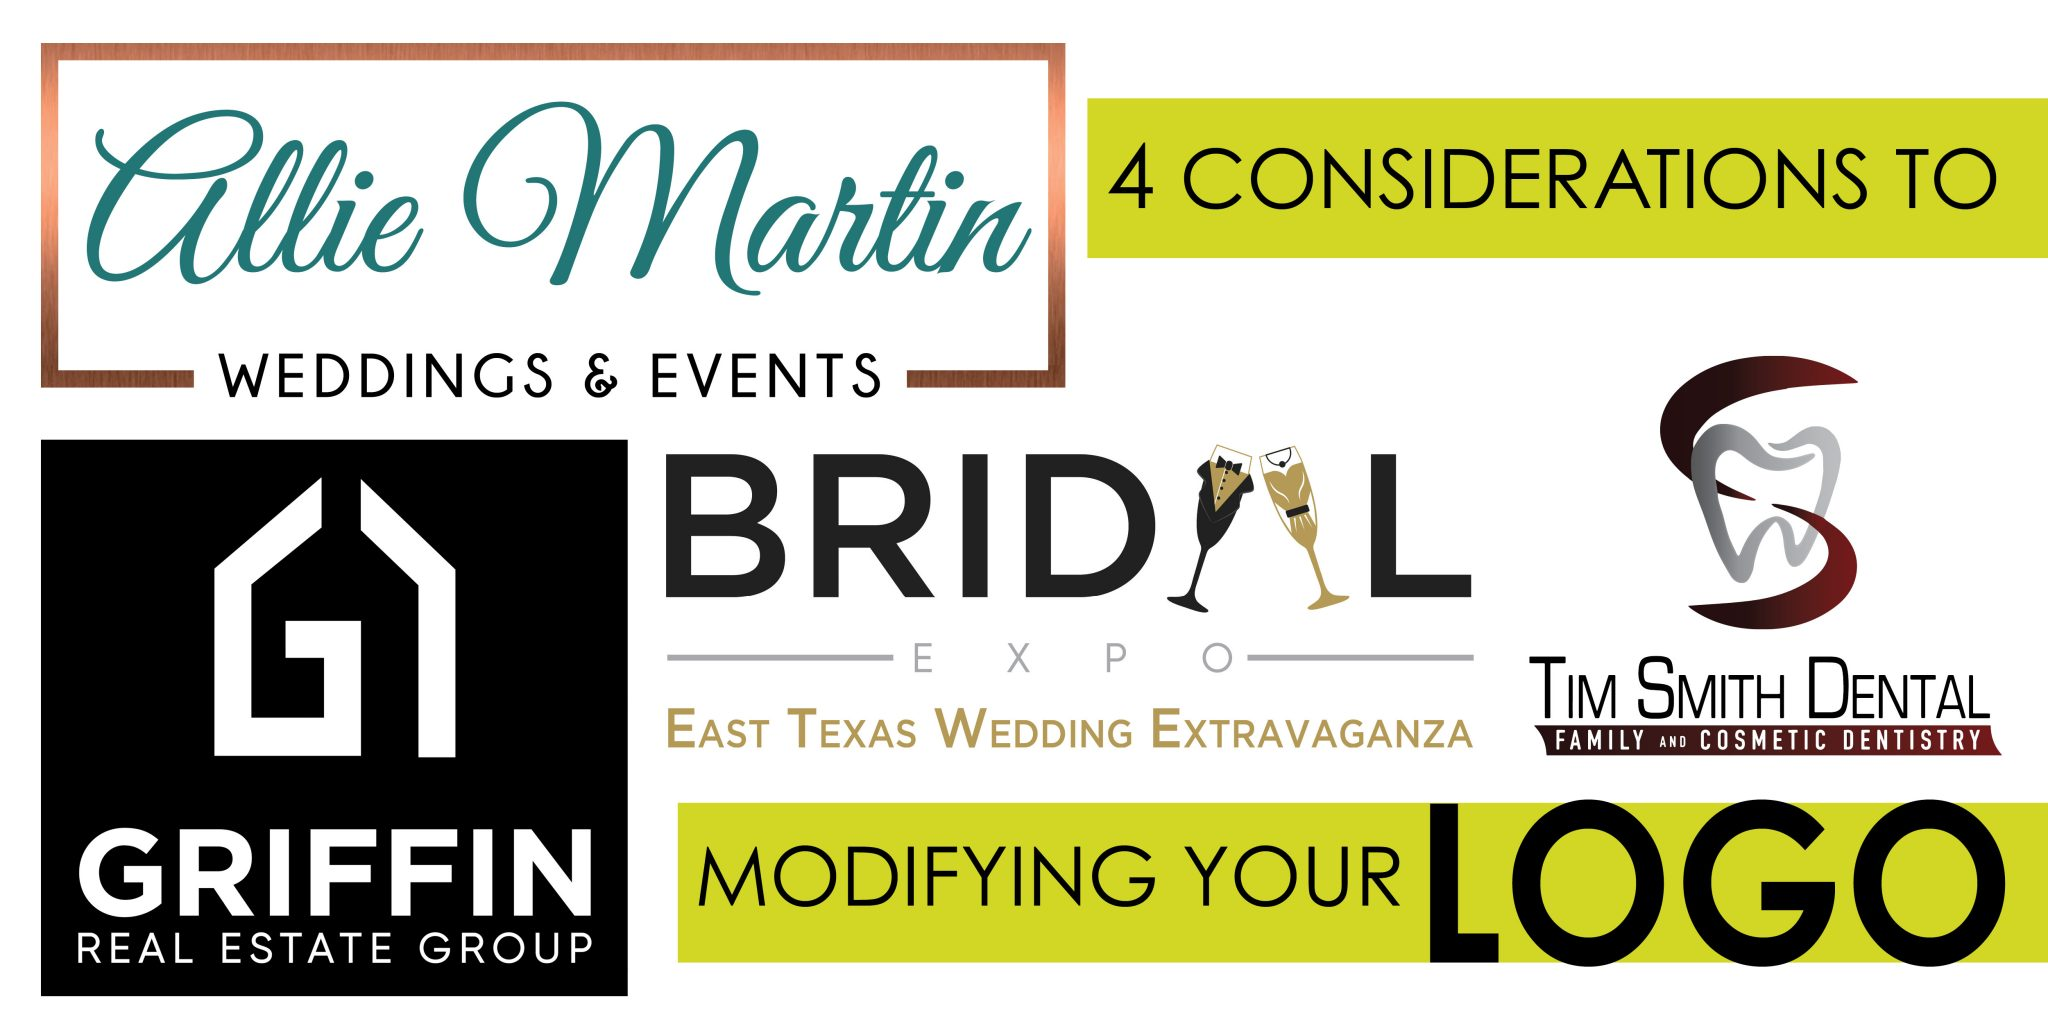 4 considerations to modifying your LOGO!